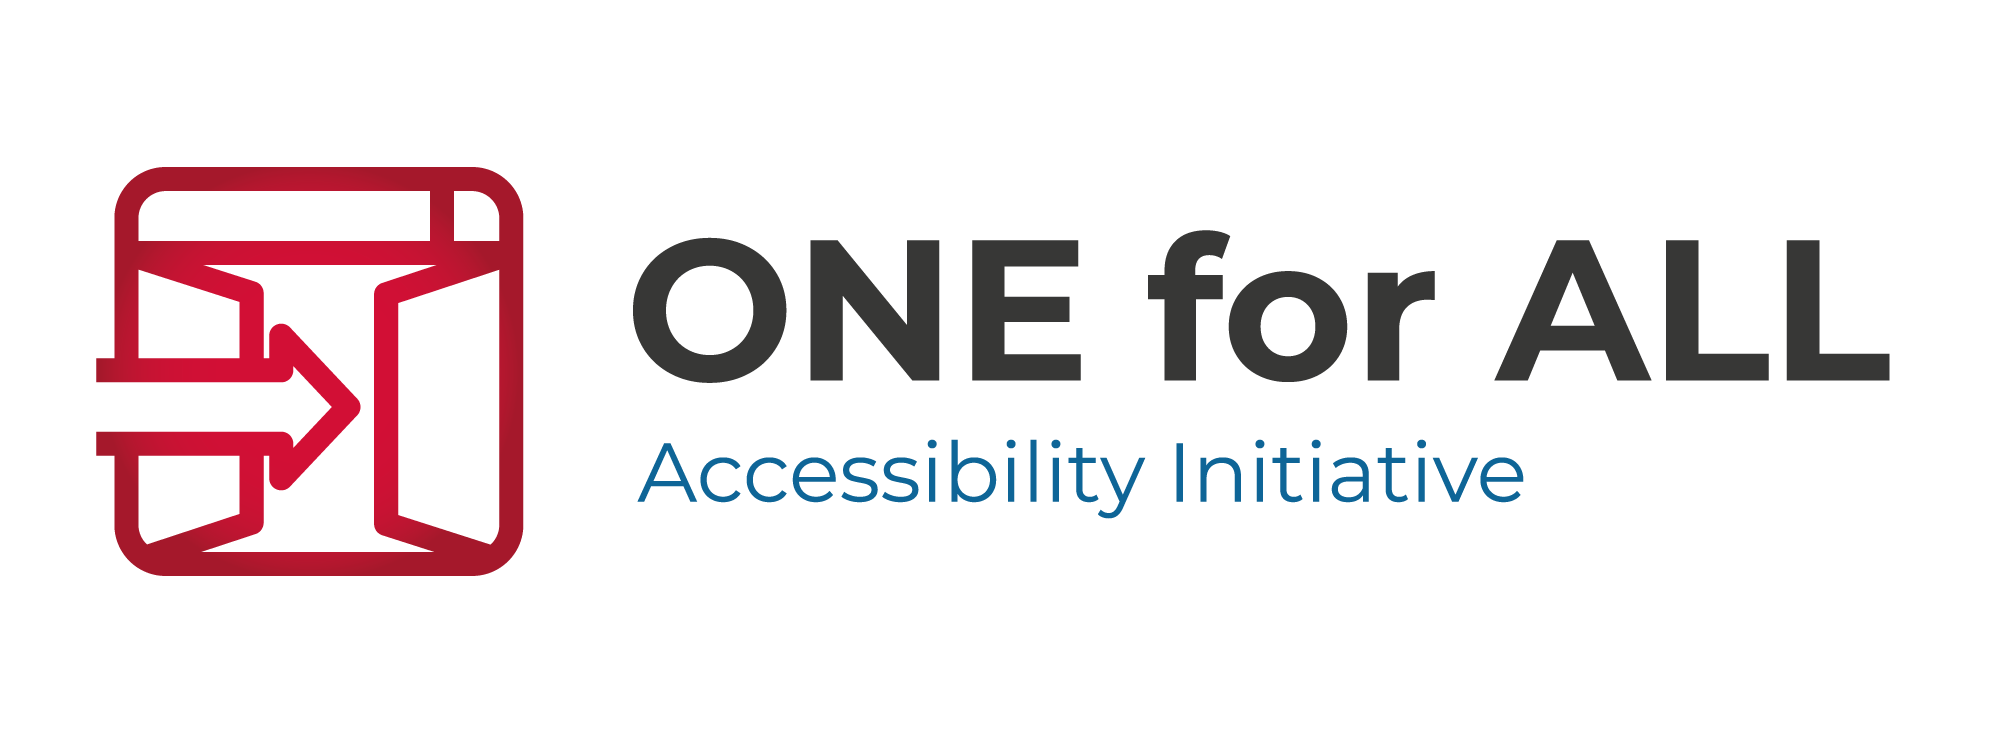 LOGO-Accessibility_ONEforALL-h